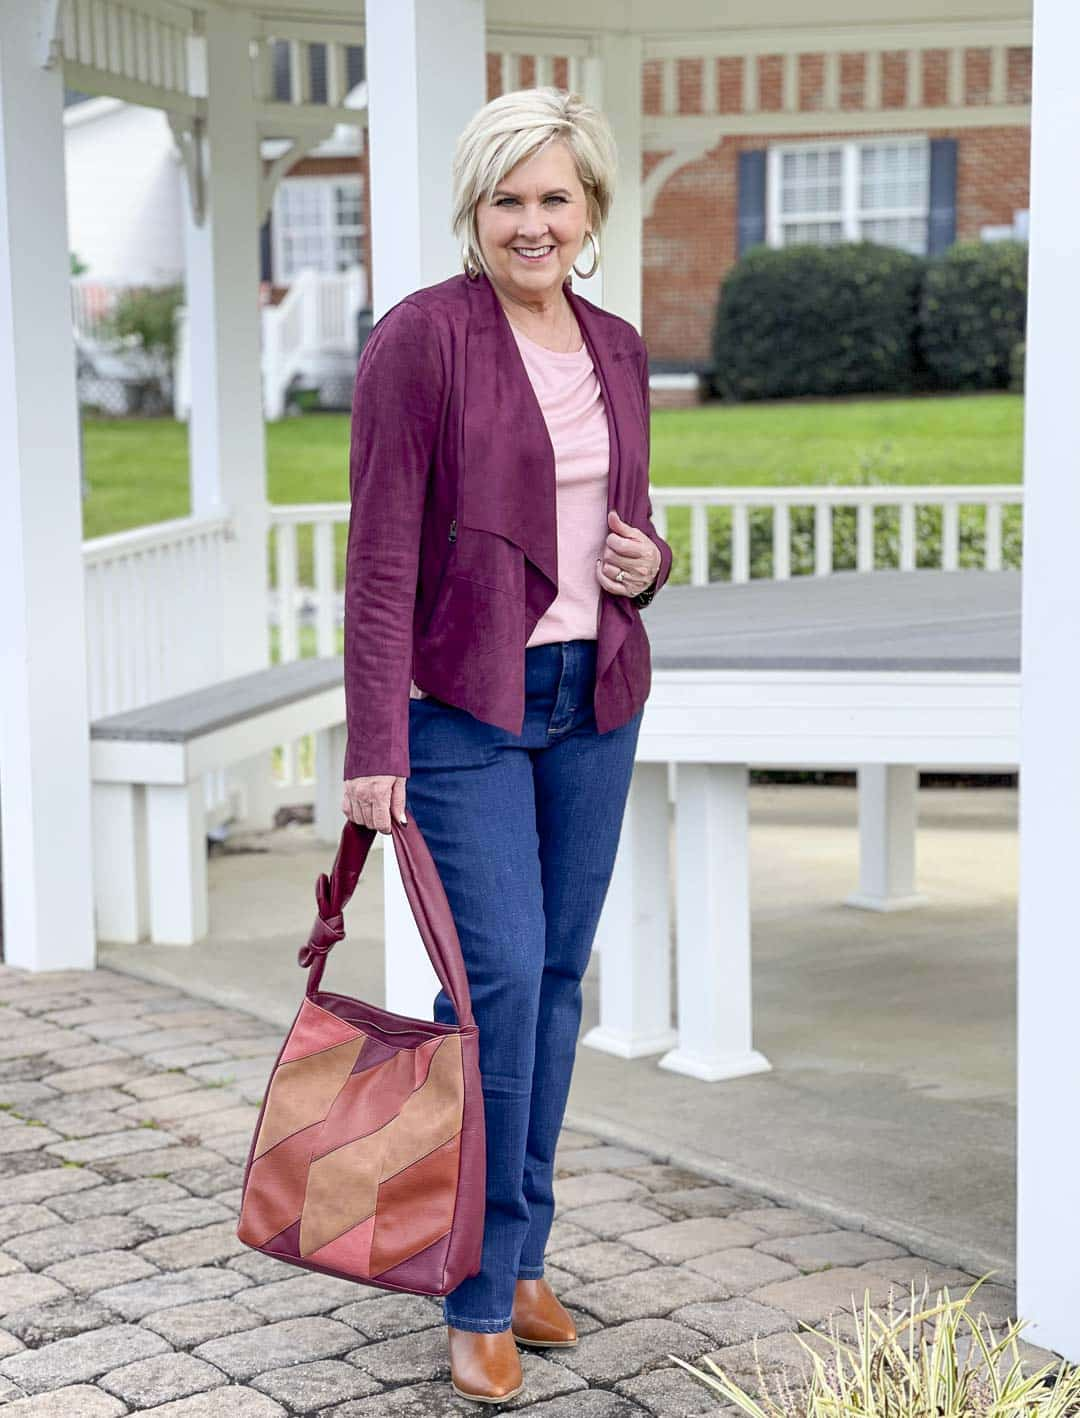 Over 40 Fashion Blogger, Tania Stephens, is showing her recent Walmart haul including this plum moto jacket, pink tee, bootcut jeans, and patchwork bag